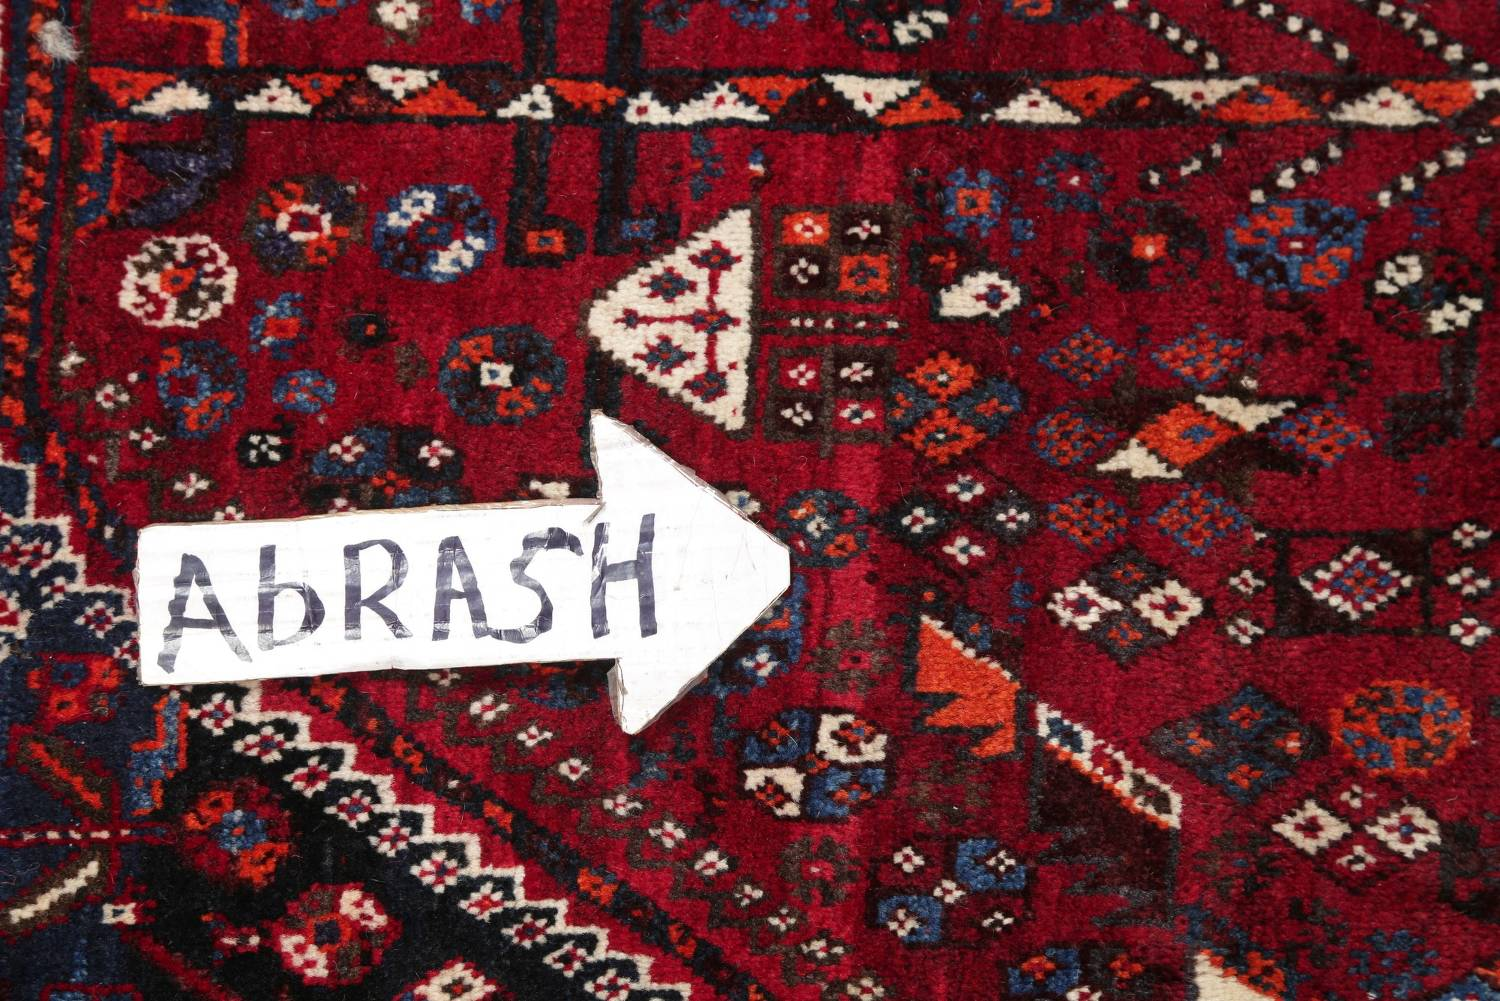 Antique Red Tribal Geometric Qashqai Persian Hand-Knotted 5x8 Wool Area Rug image 10